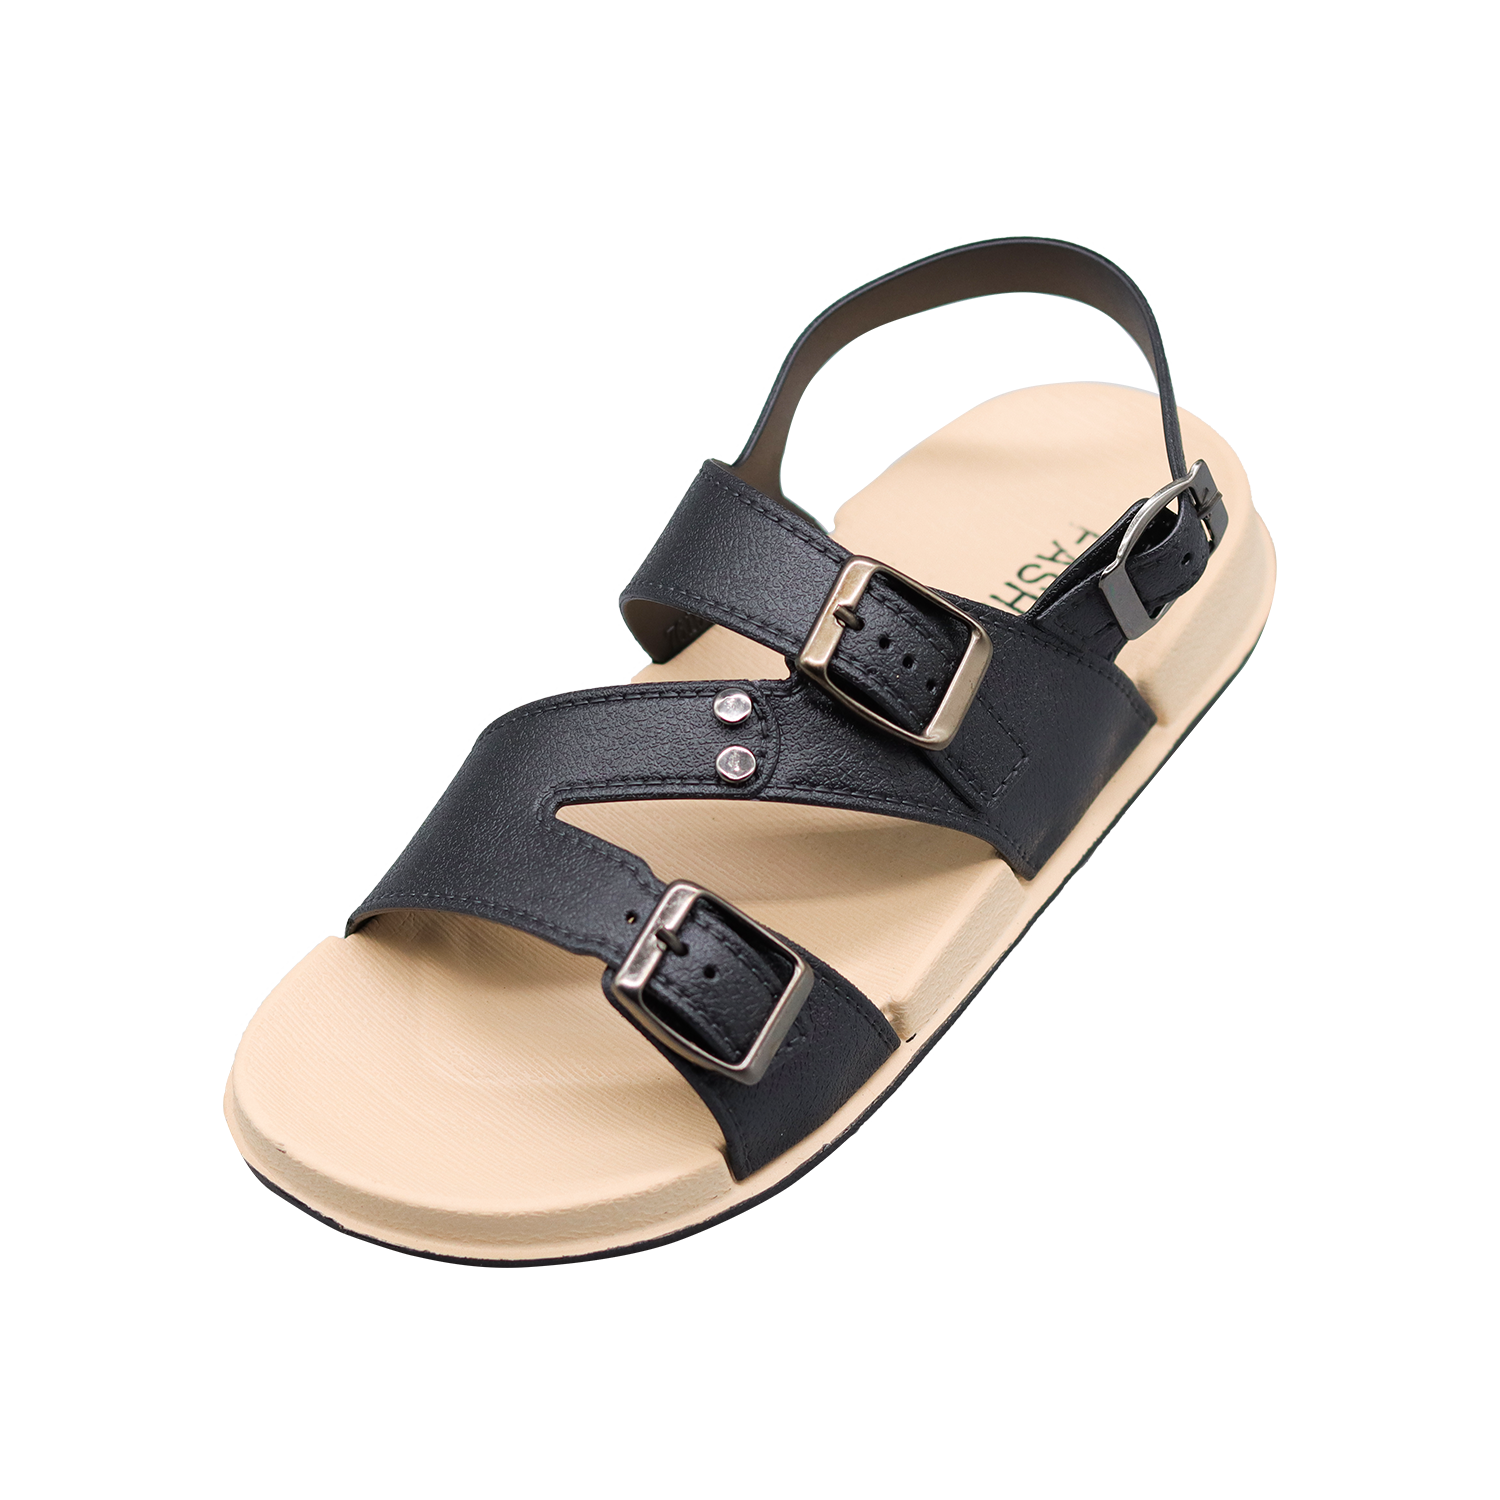 New style beach sandals for men and women